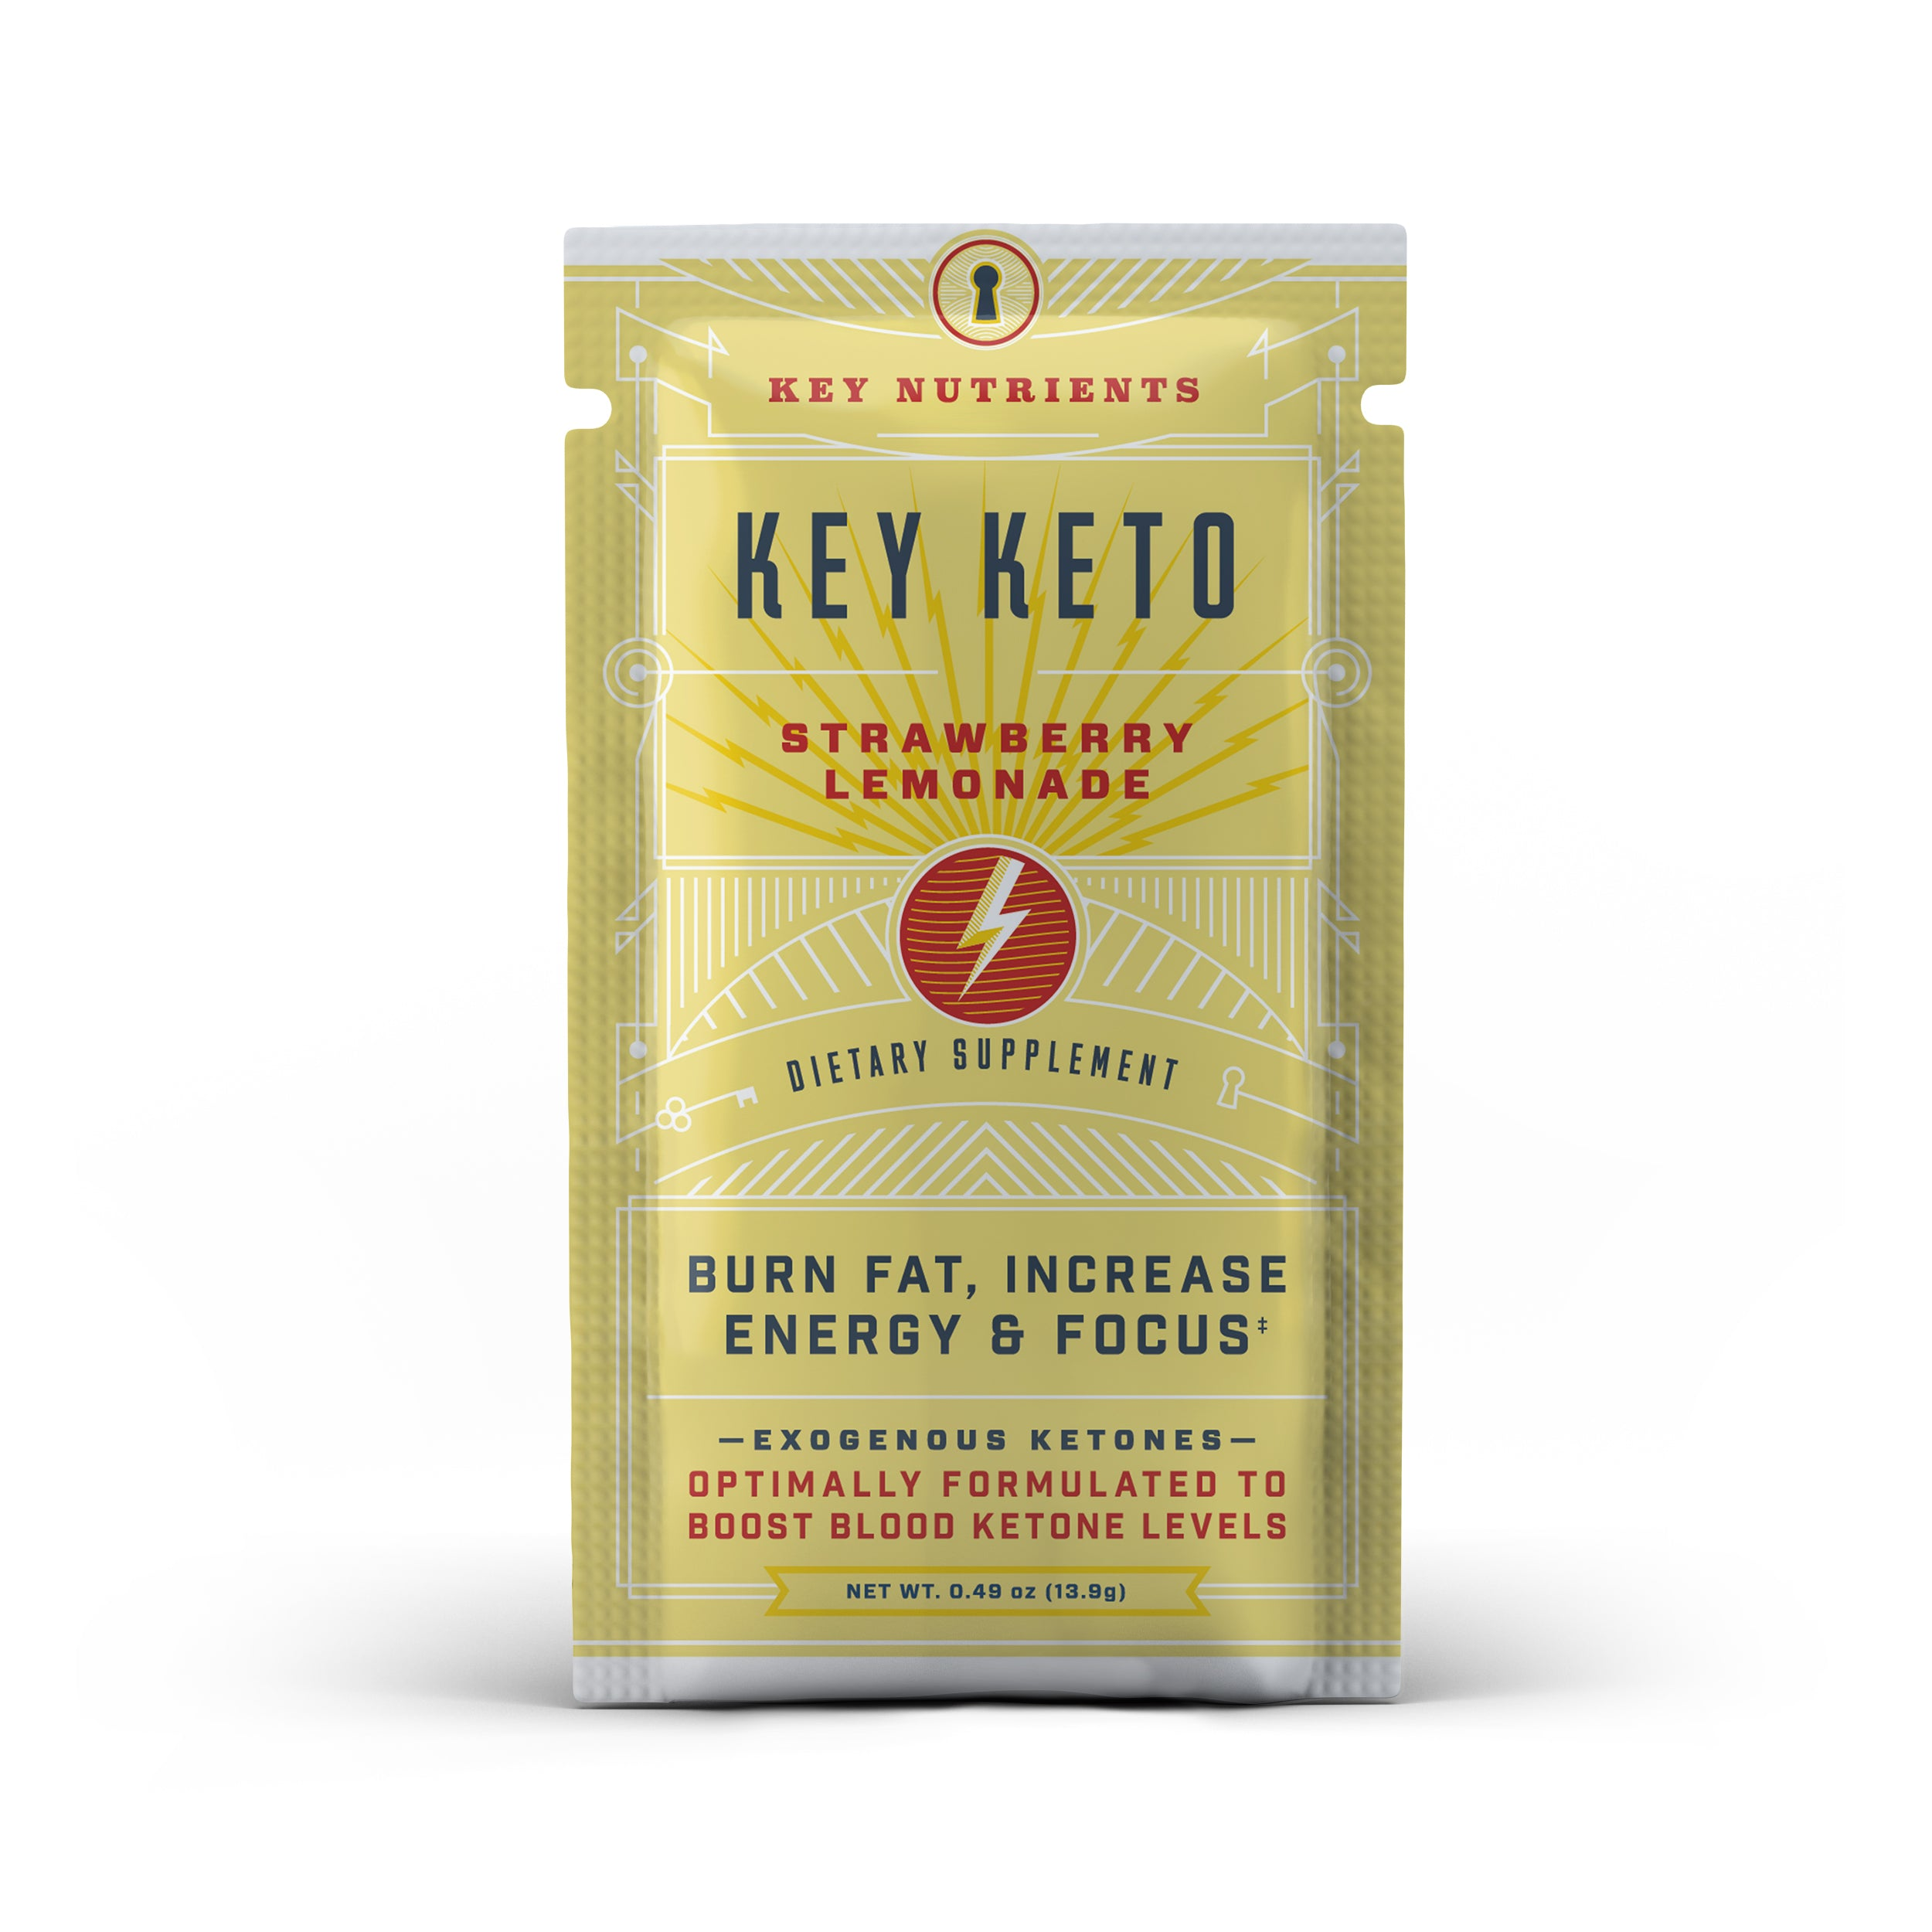 Key Keto Packets - Strawberry Lemonade Travel Pouch